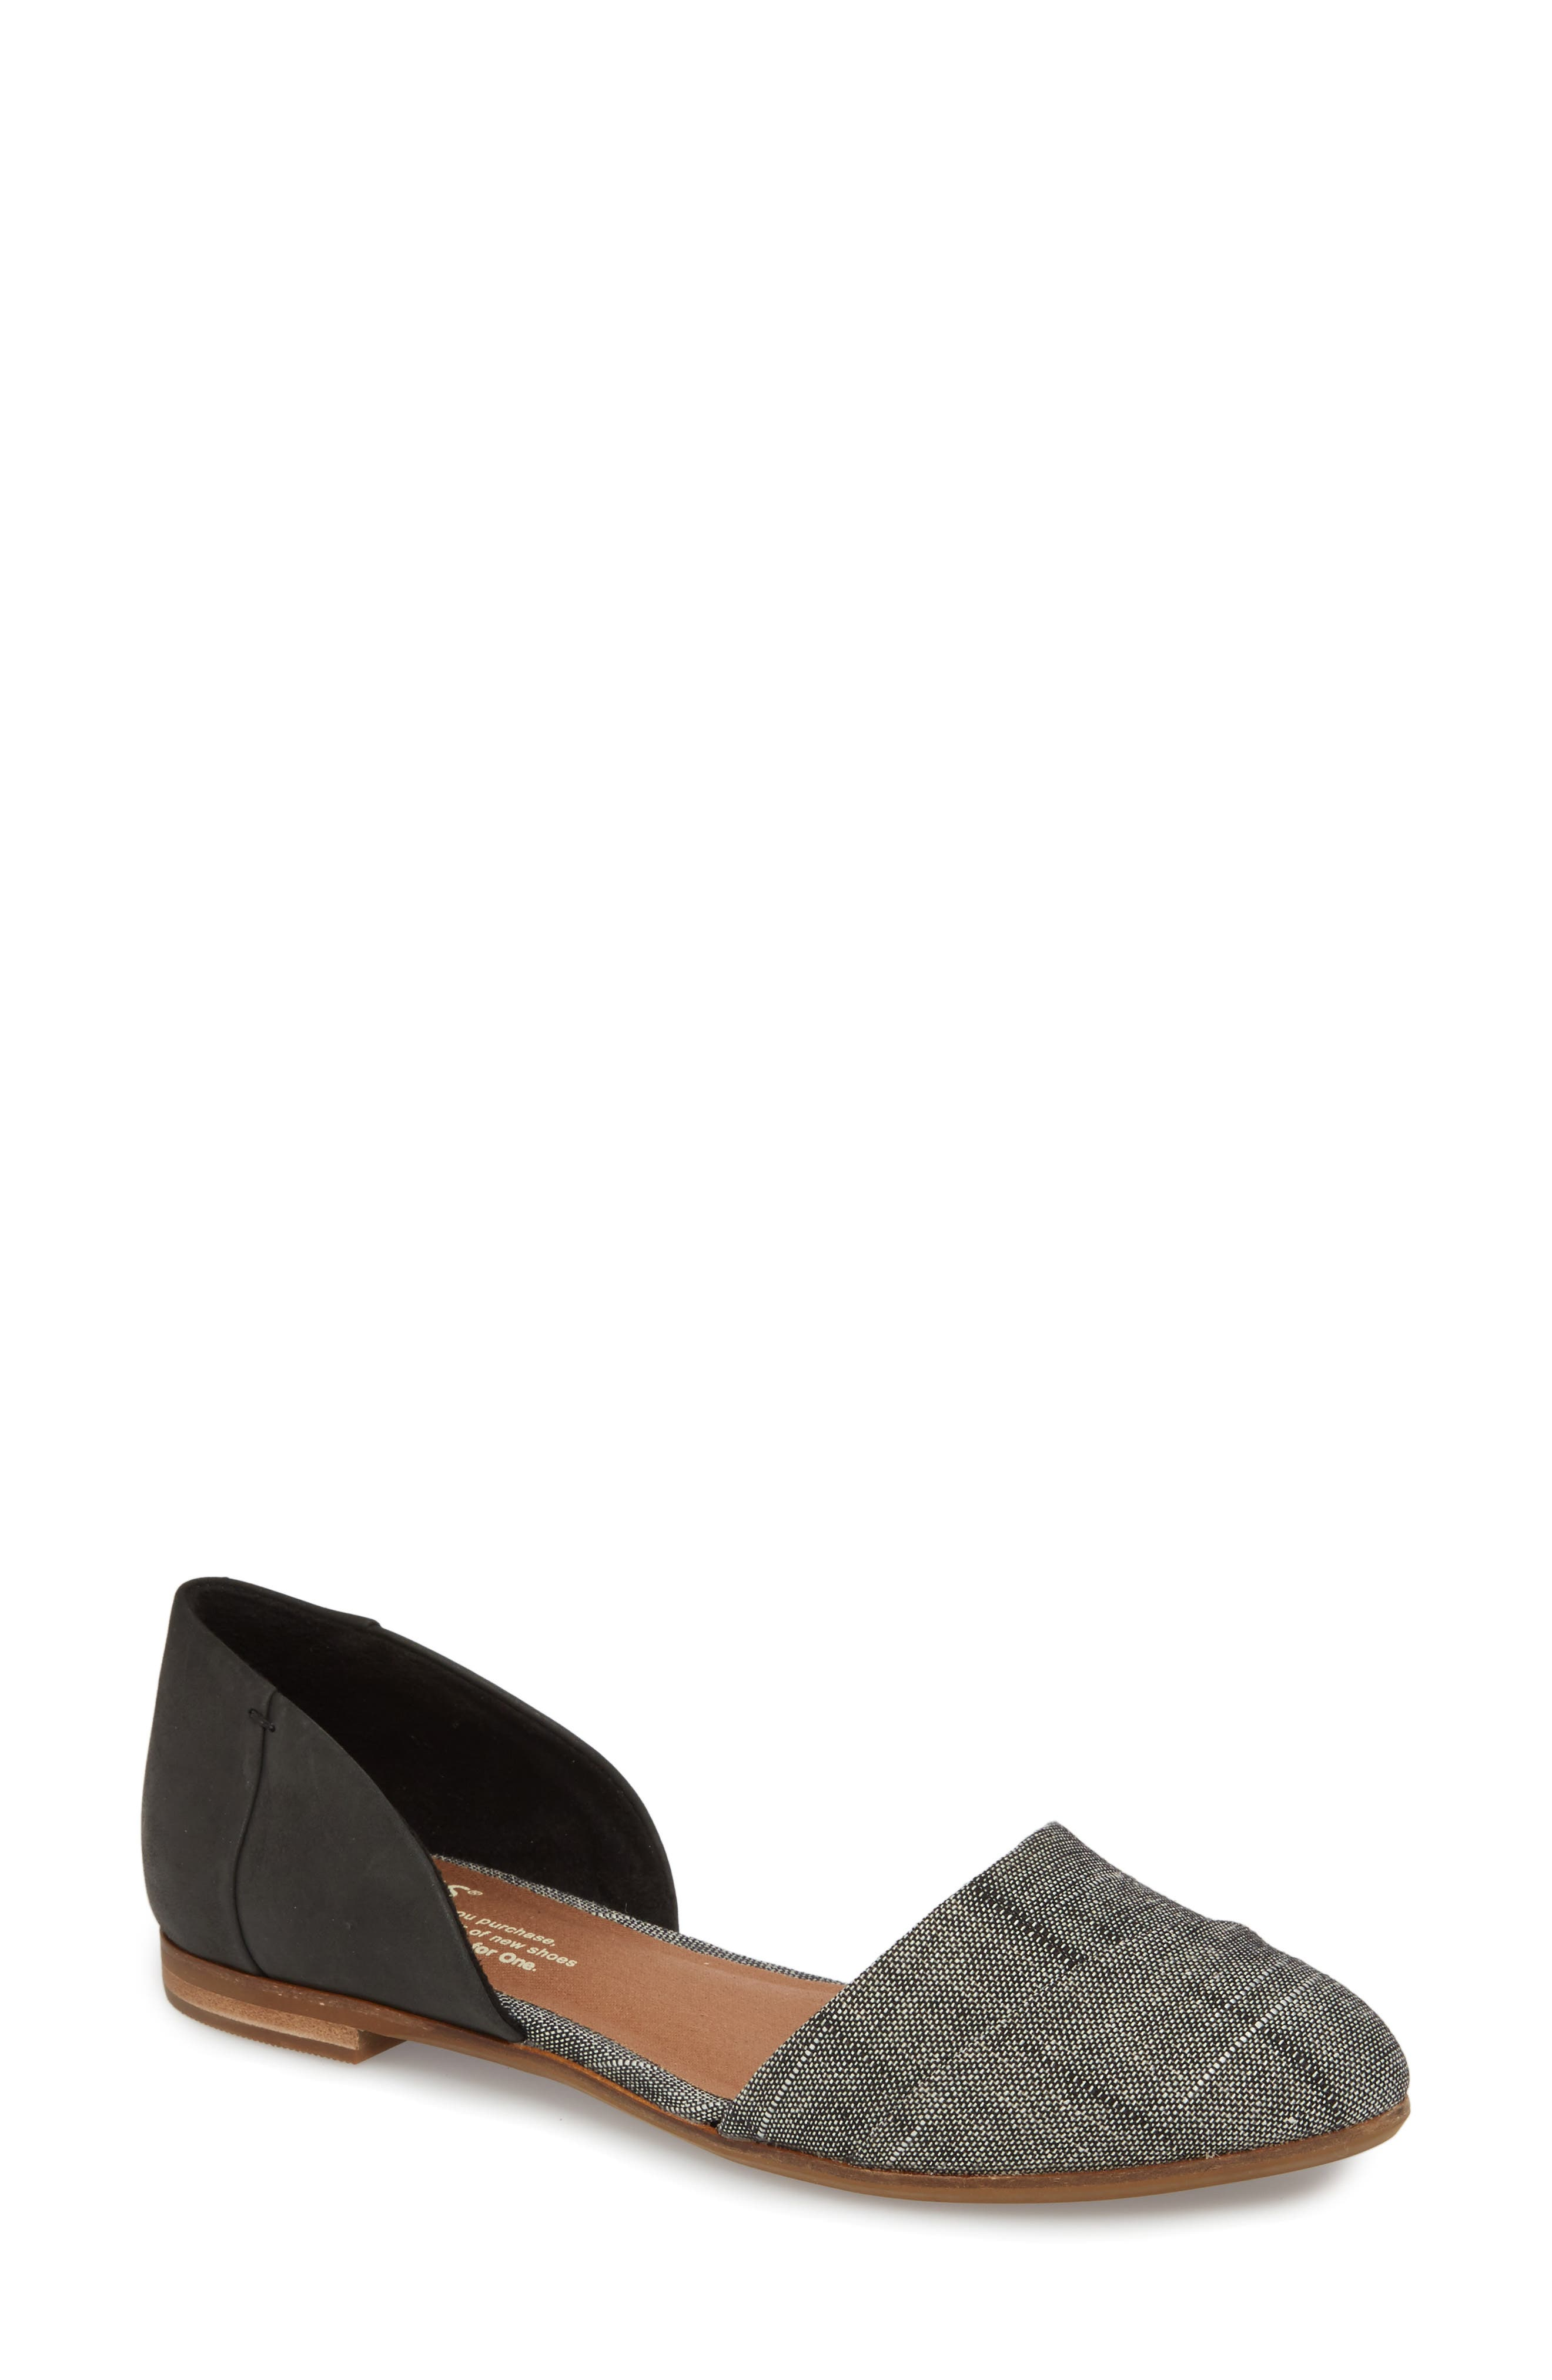 Jutti d'Orsay Flat,                             Main thumbnail 1, color,                             BLACK LEATHER/ CHAMBRAY